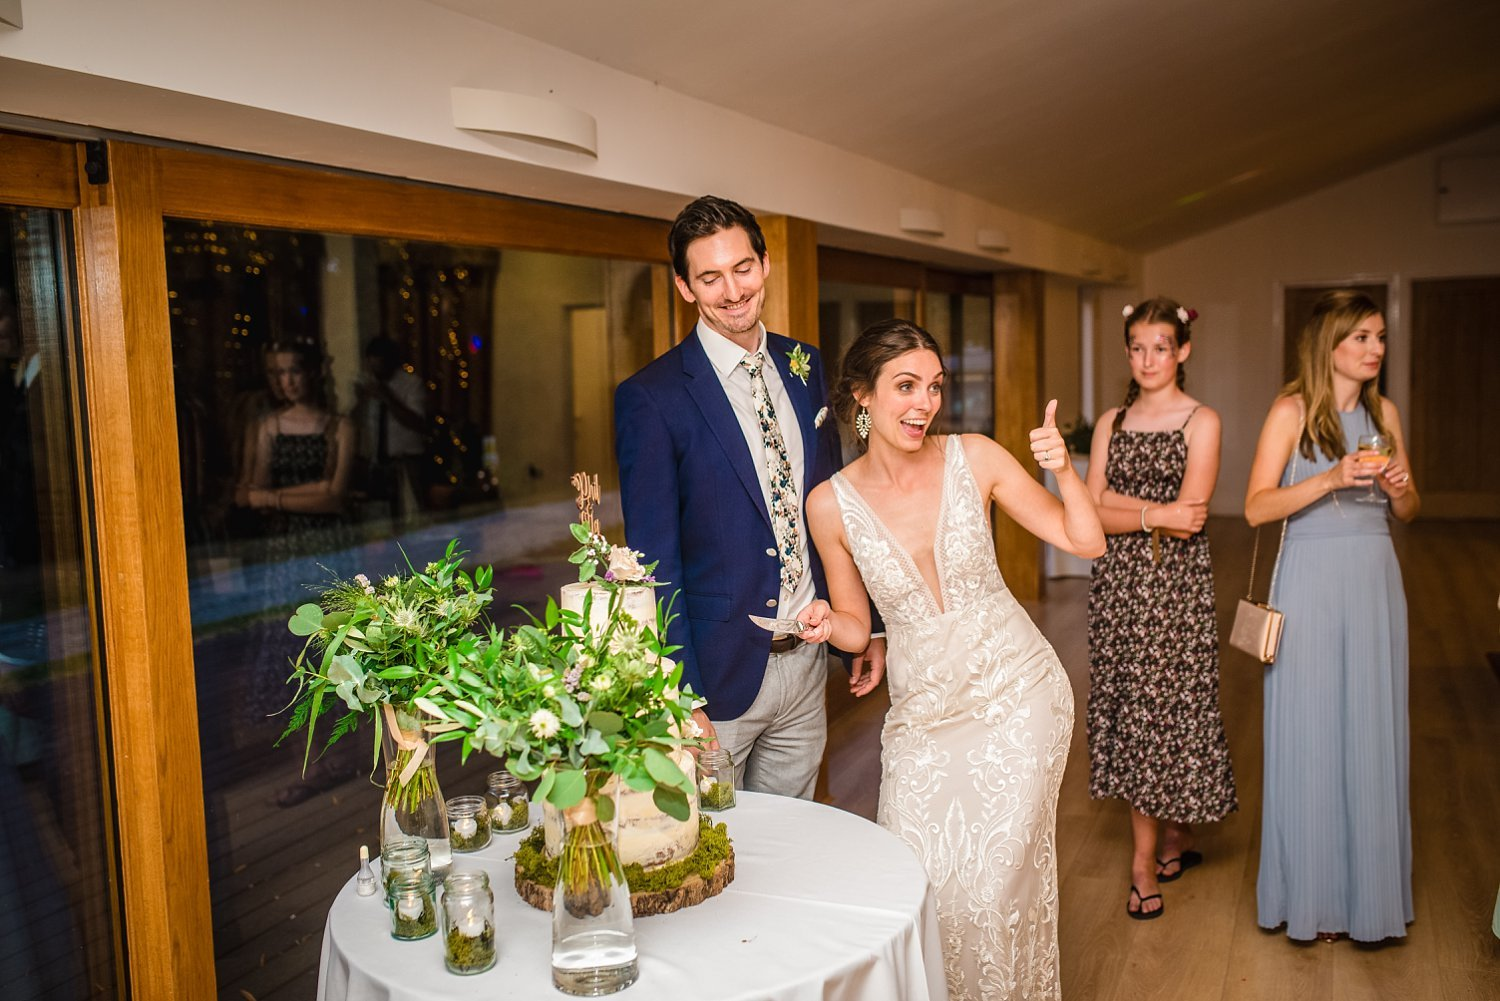 Colville Hall Weding Photographer - bride with her thumbs up. groom is standing next to her